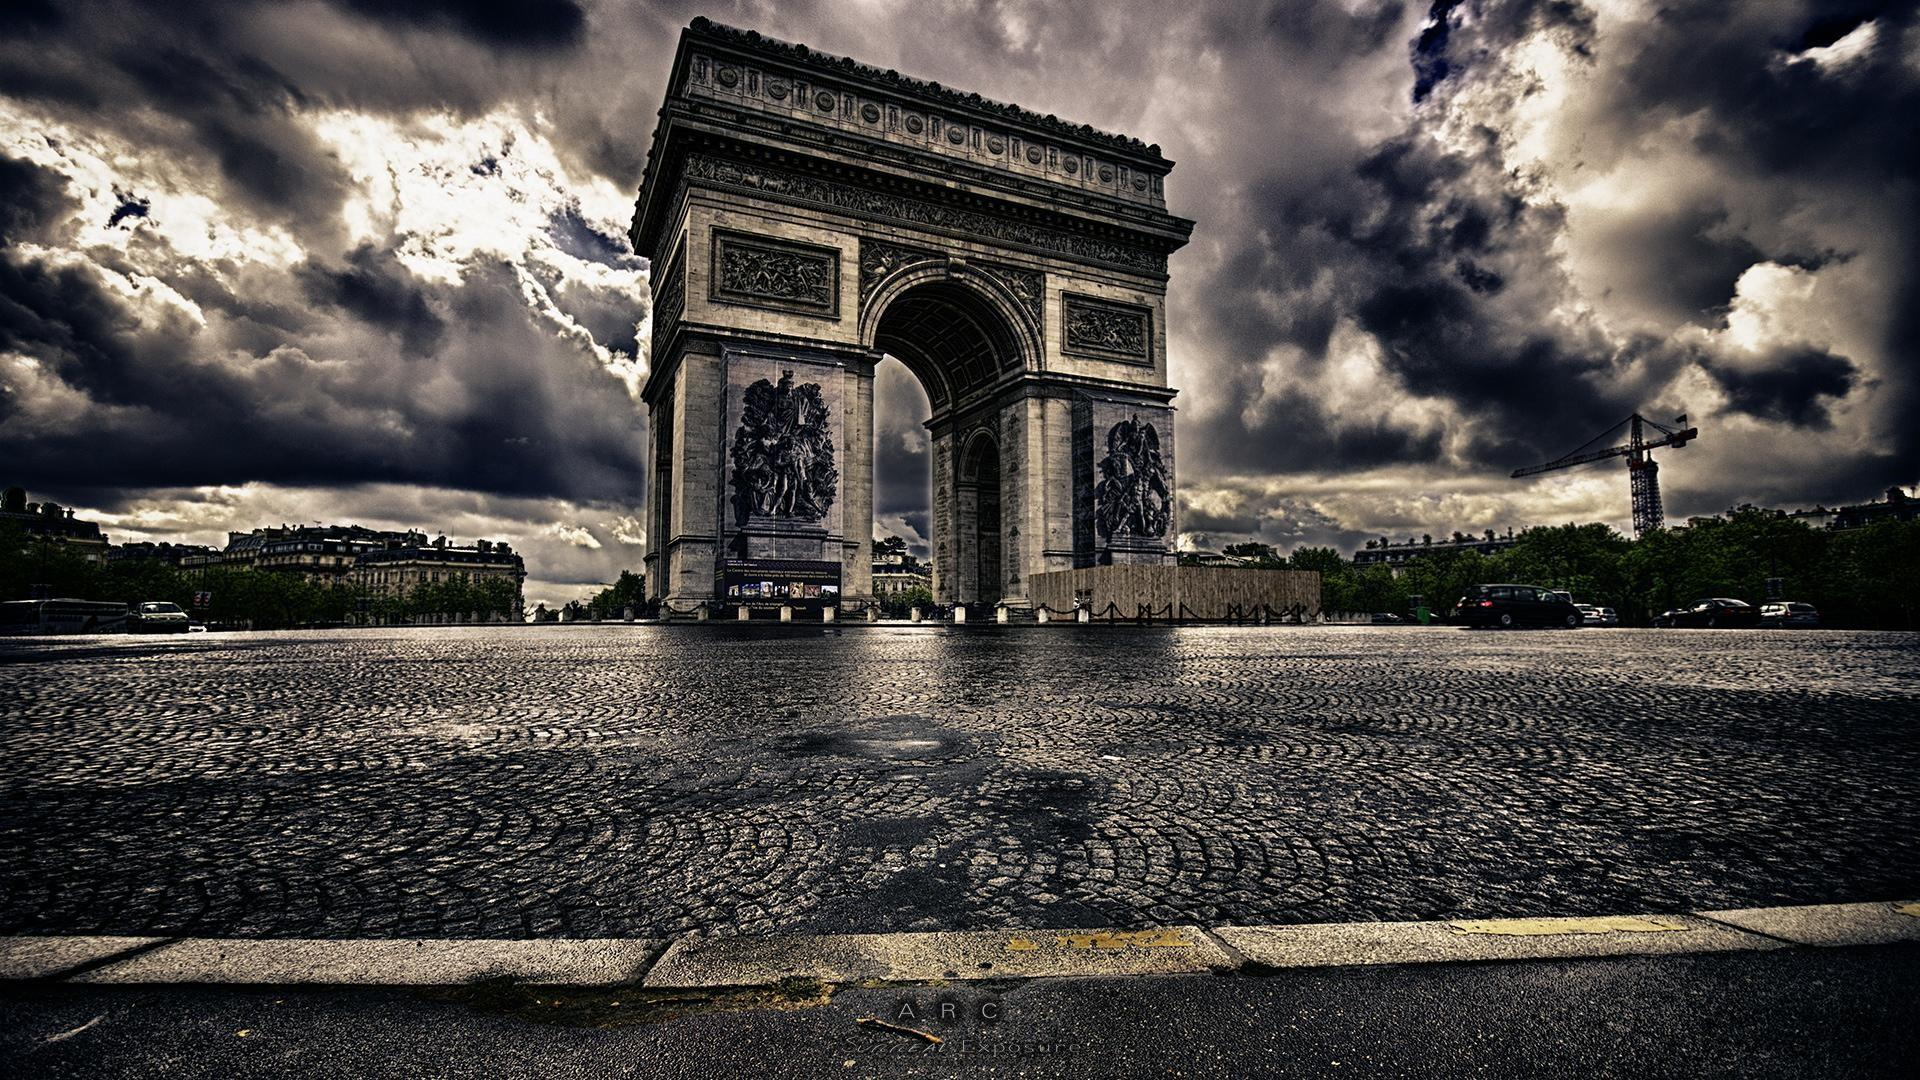 Arc de Triomphe - monochrome photography wallpaper